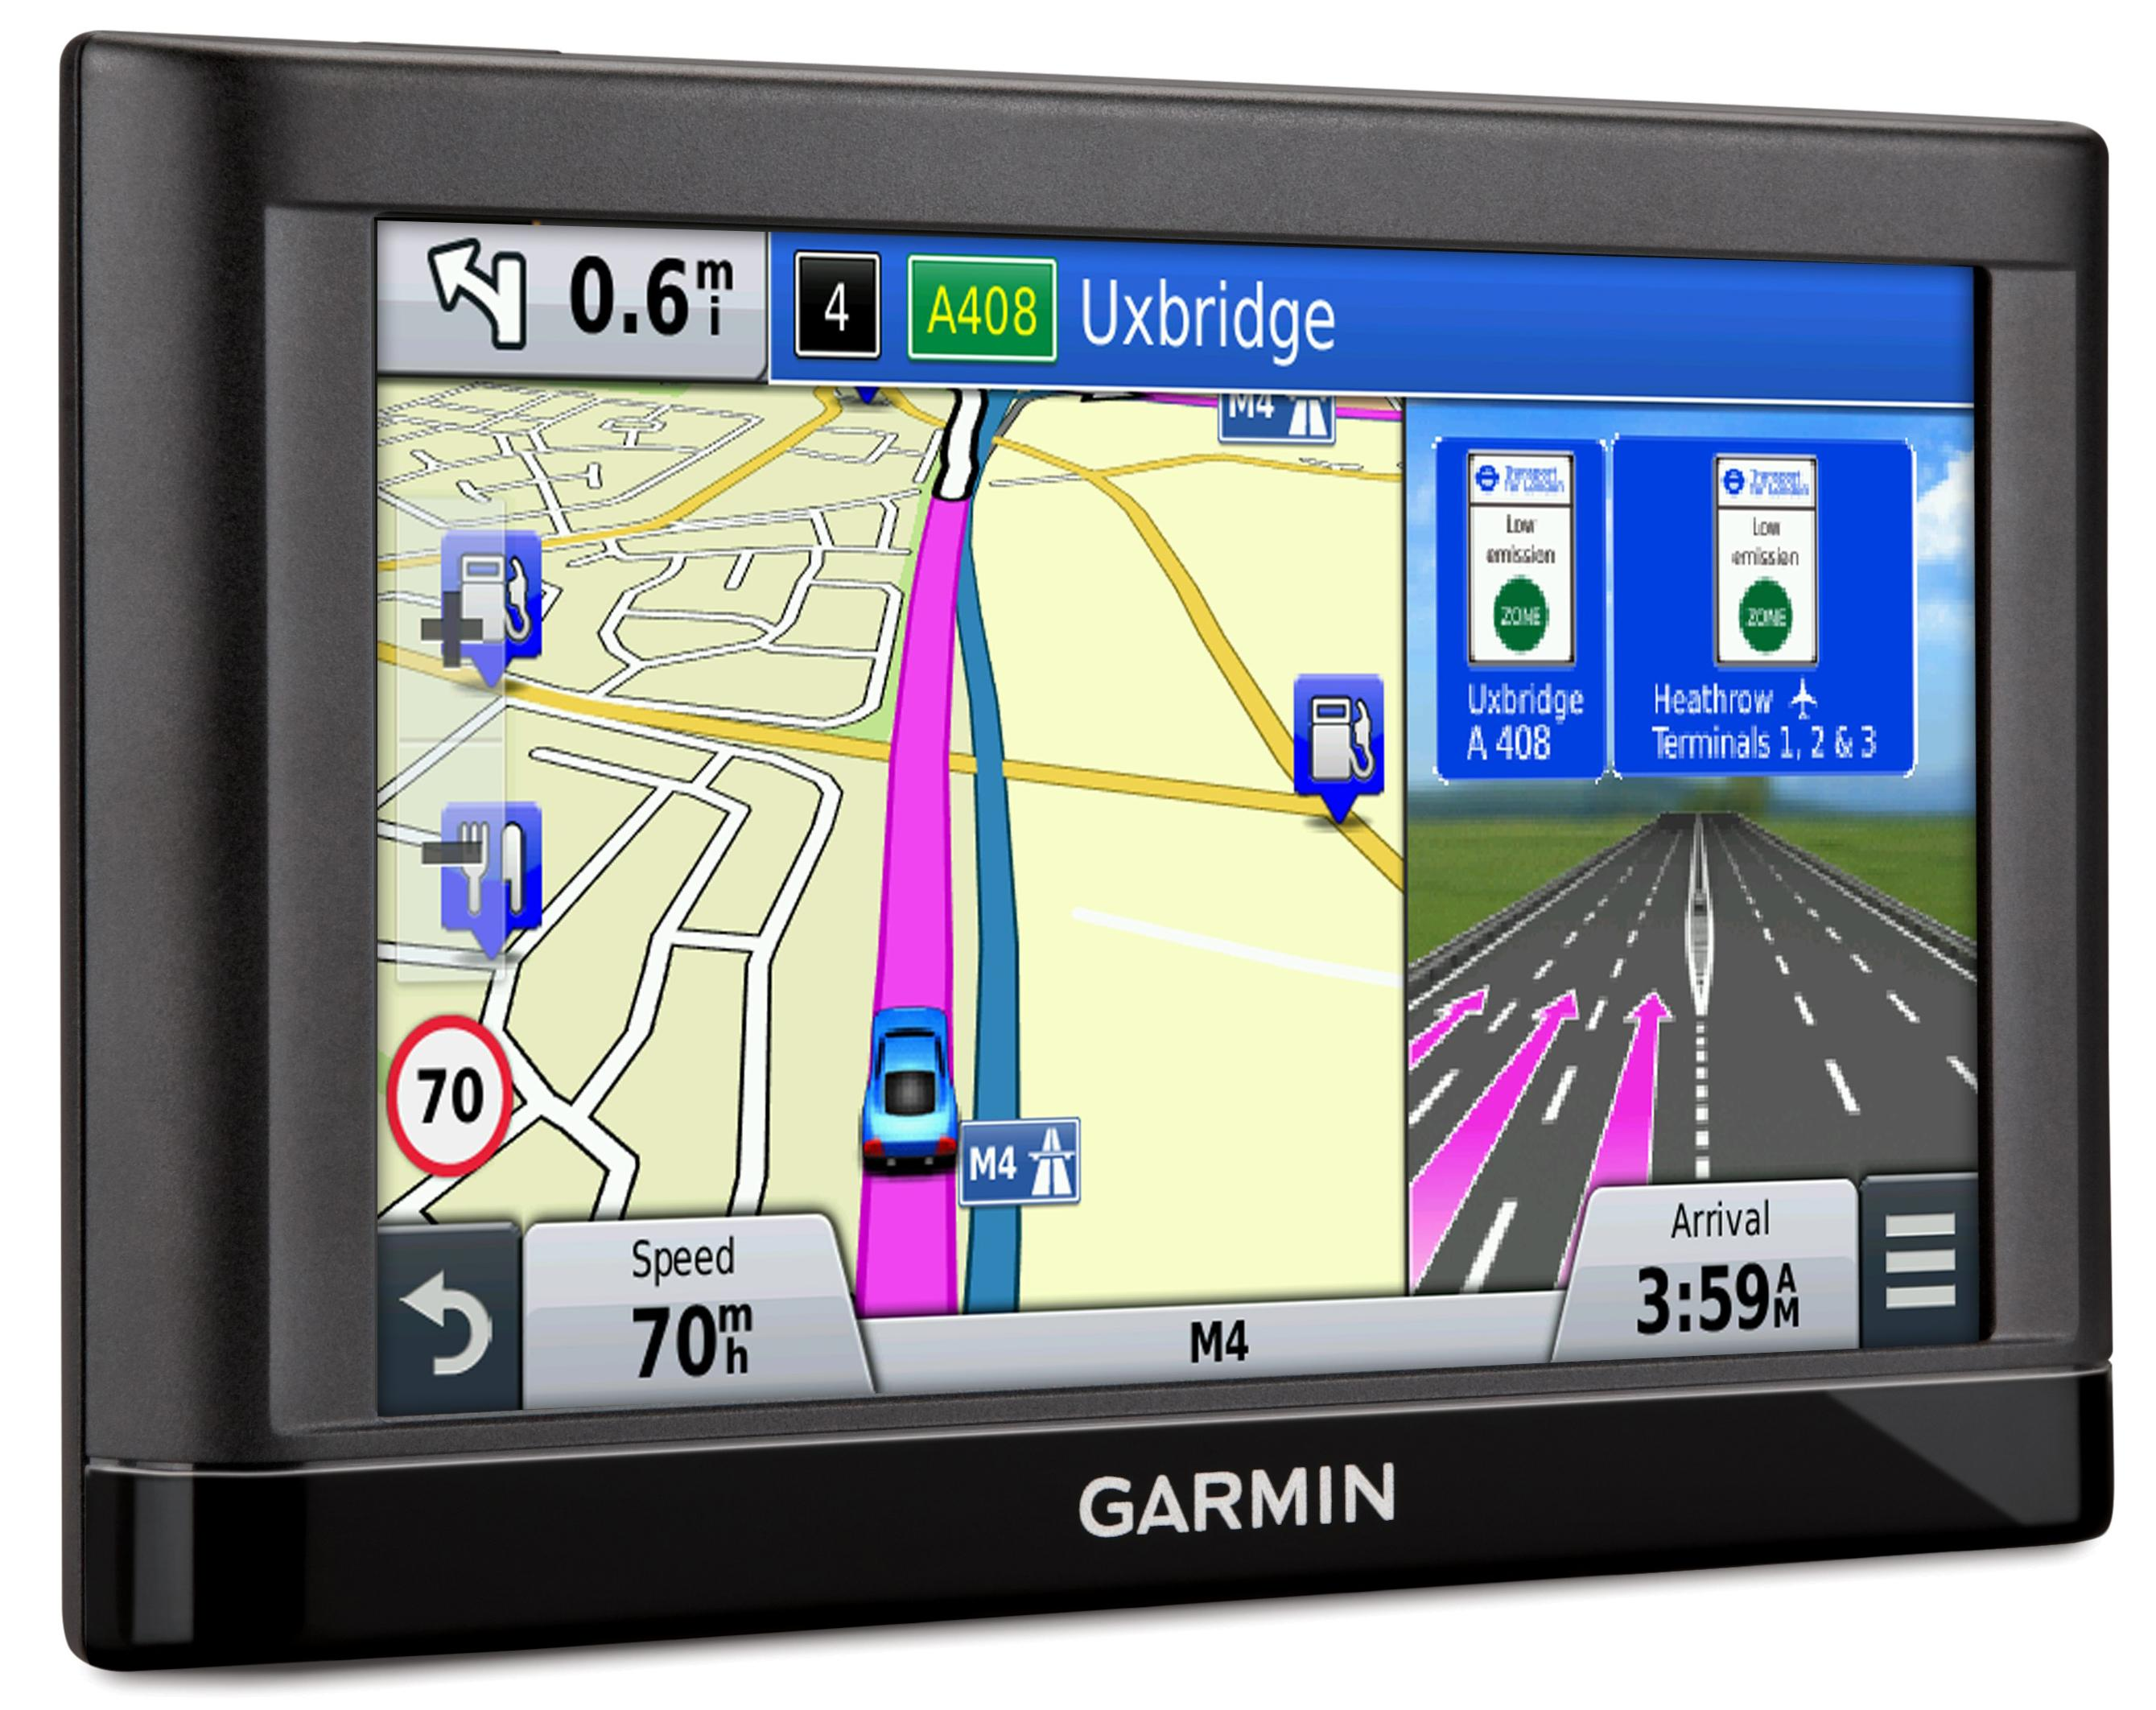 garmin nuvi 56 lm eu 5 sat nav navigation gps system uk. Black Bedroom Furniture Sets. Home Design Ideas